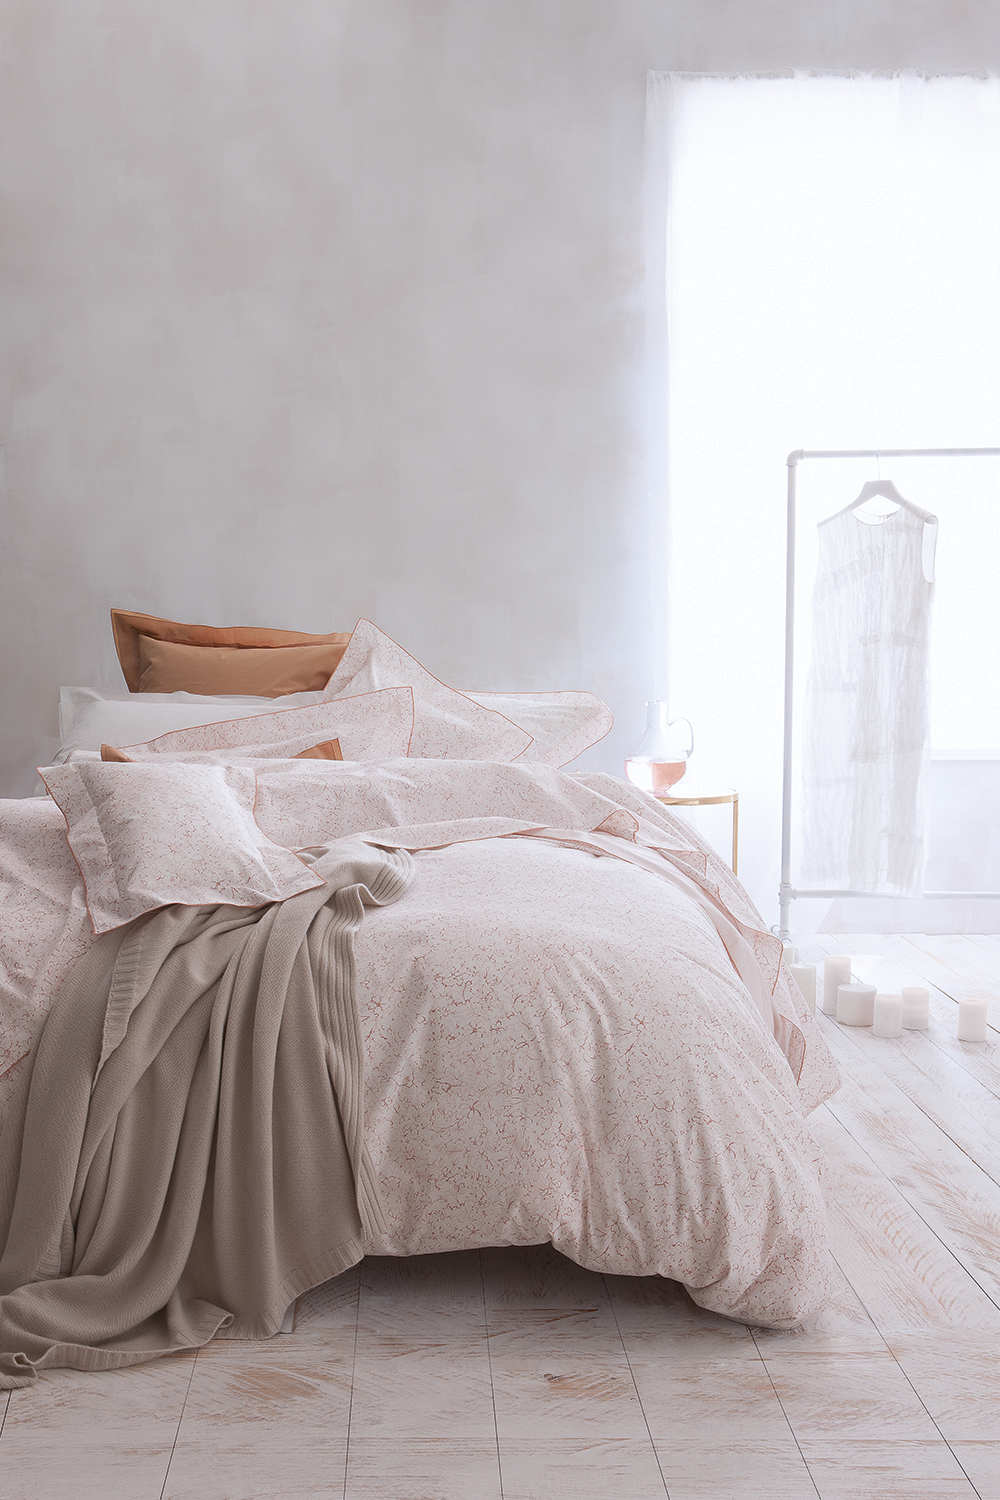 uuu nina ricci maison fugue bedding. Black Bedroom Furniture Sets. Home Design Ideas